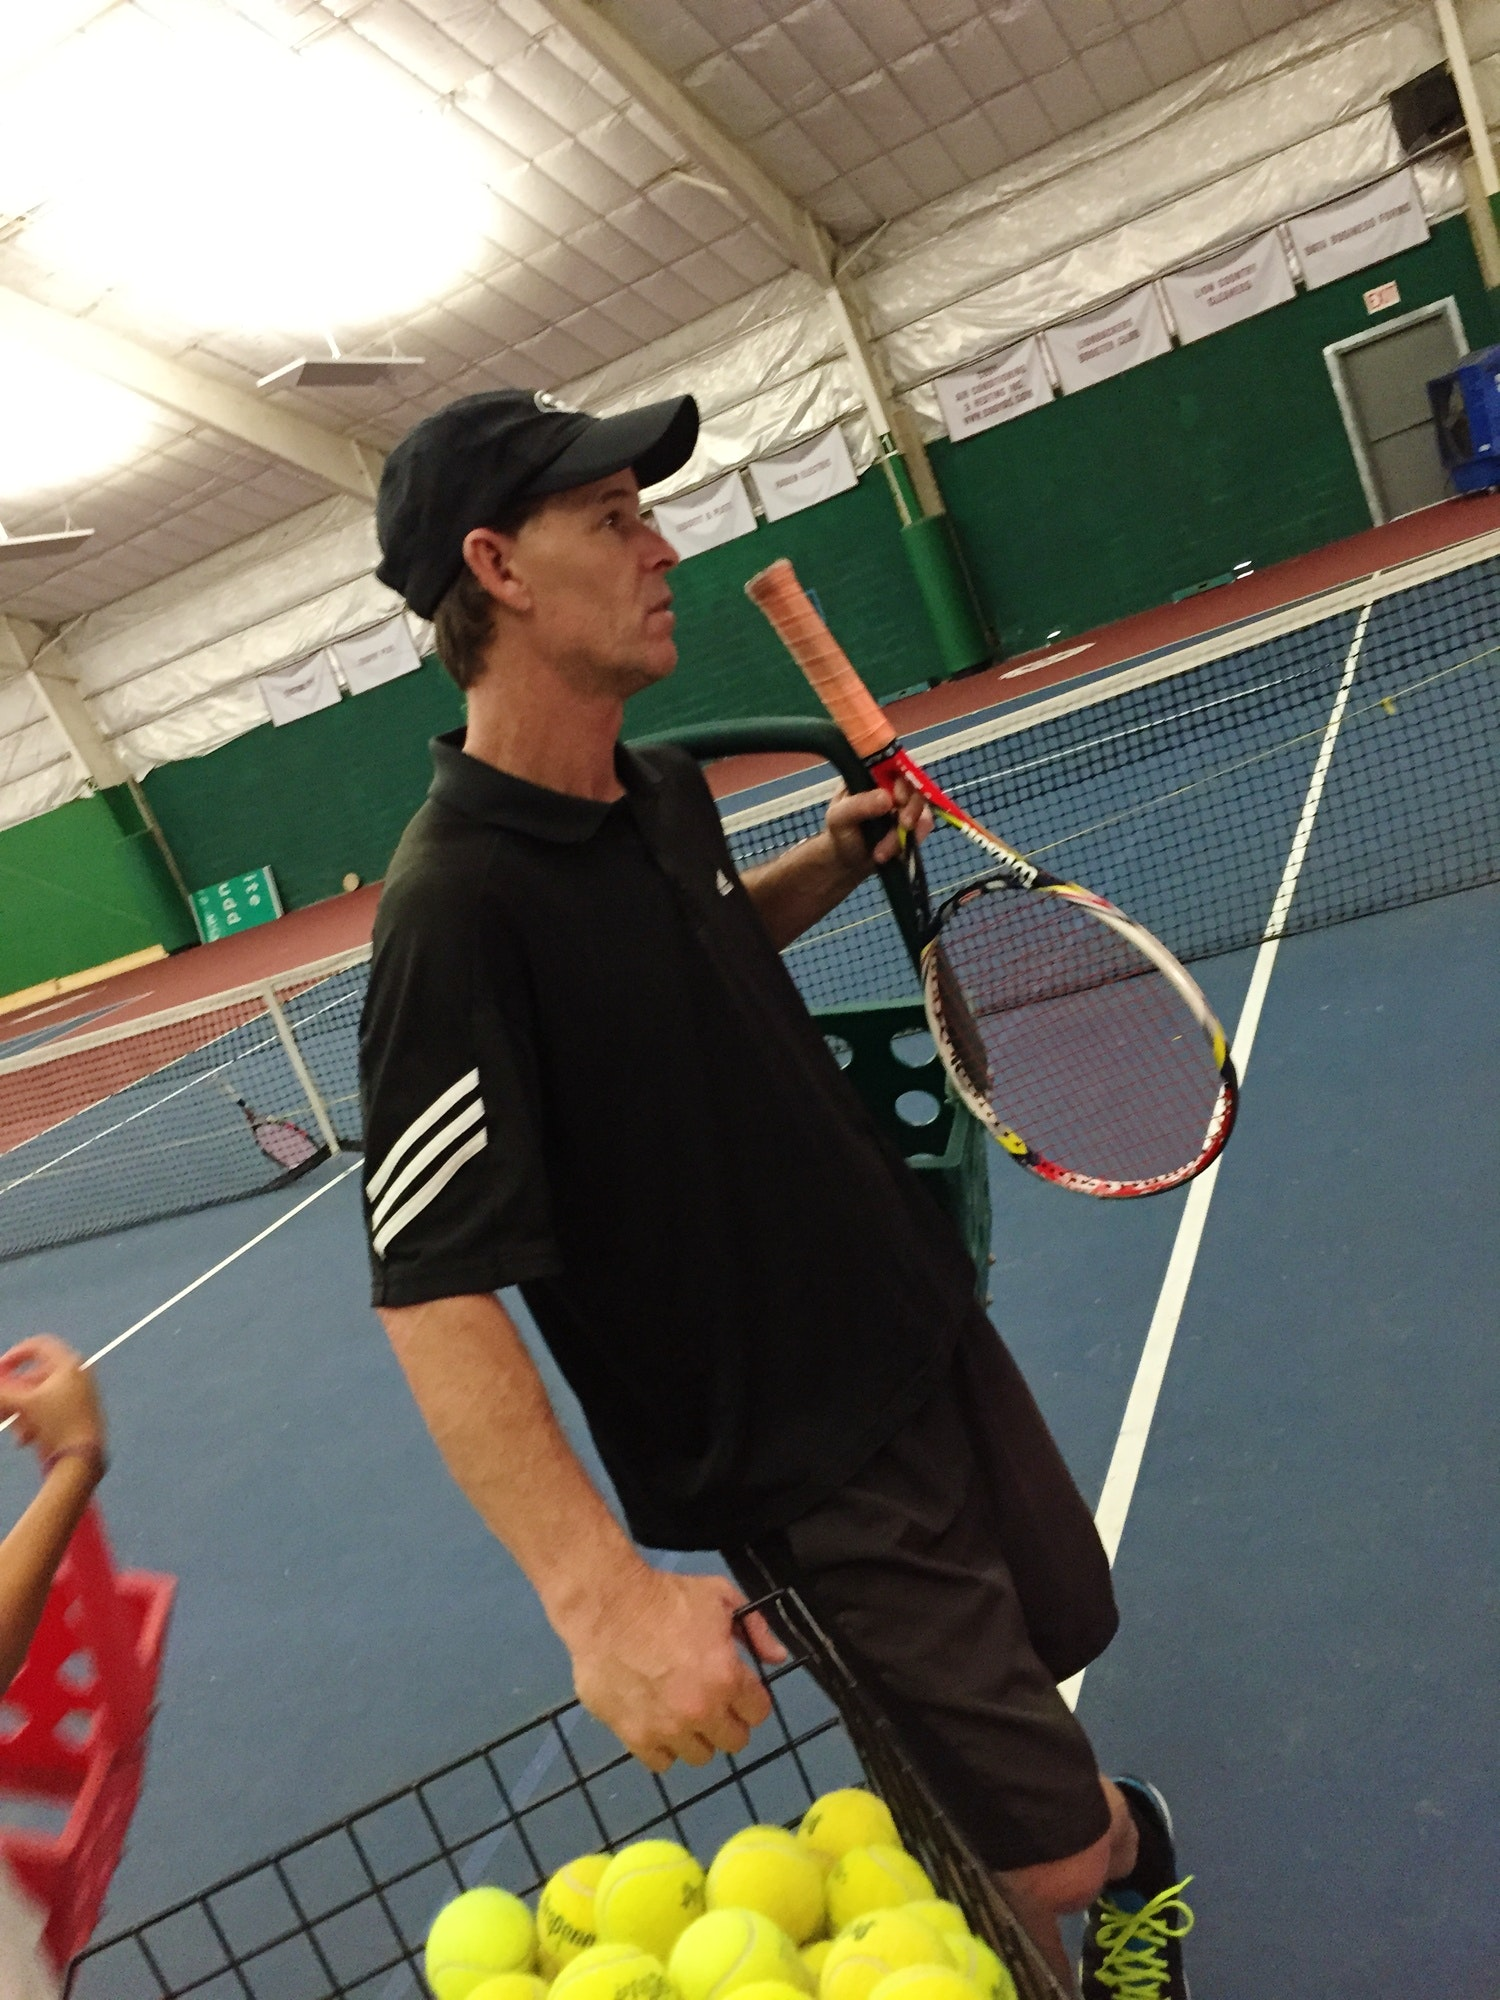 Tom R. teaches tennis lessons in Mansfield, TX